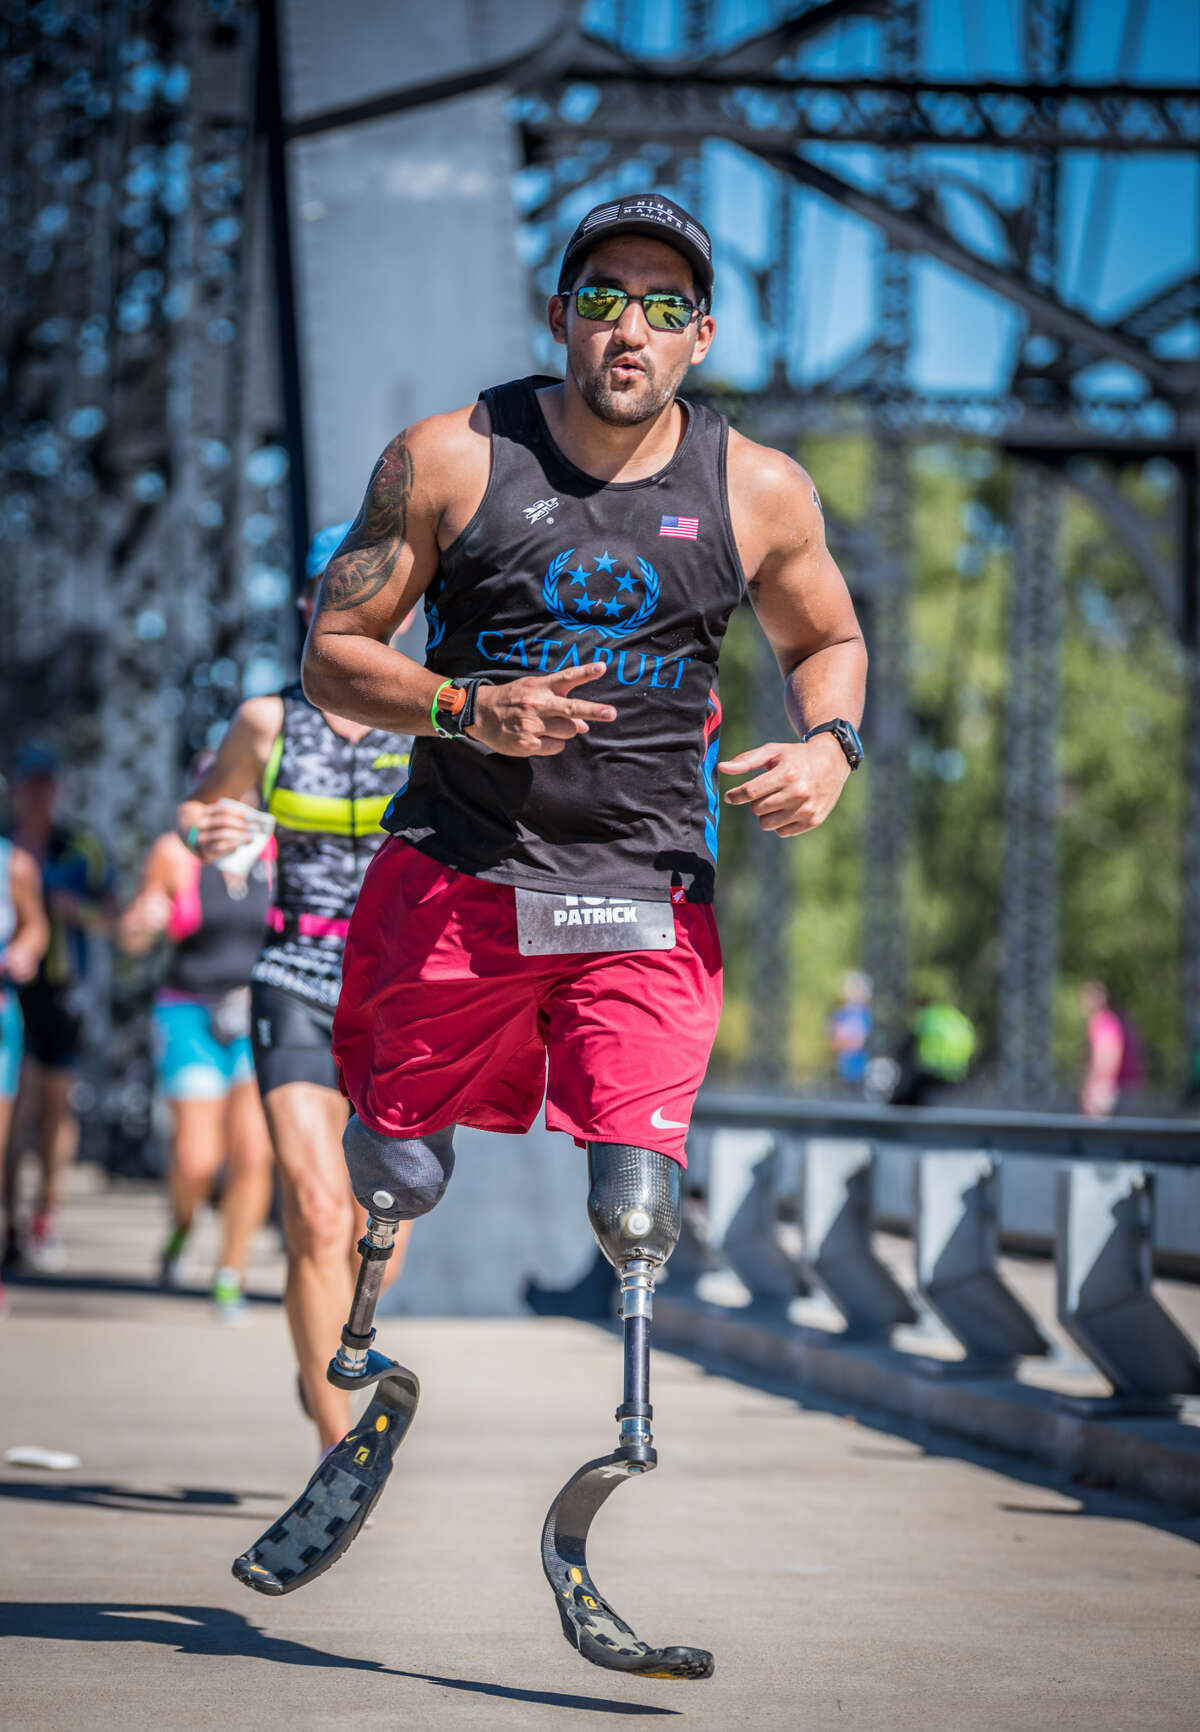 Patrick Pressgrove Patrick Pressgrove endured an emotional year. Not only did the double-amputee reunite with his birth mother, Pressgrove also participated in Chevron's Houston Marathon. In October, he competed in his inaugural Ironman race.